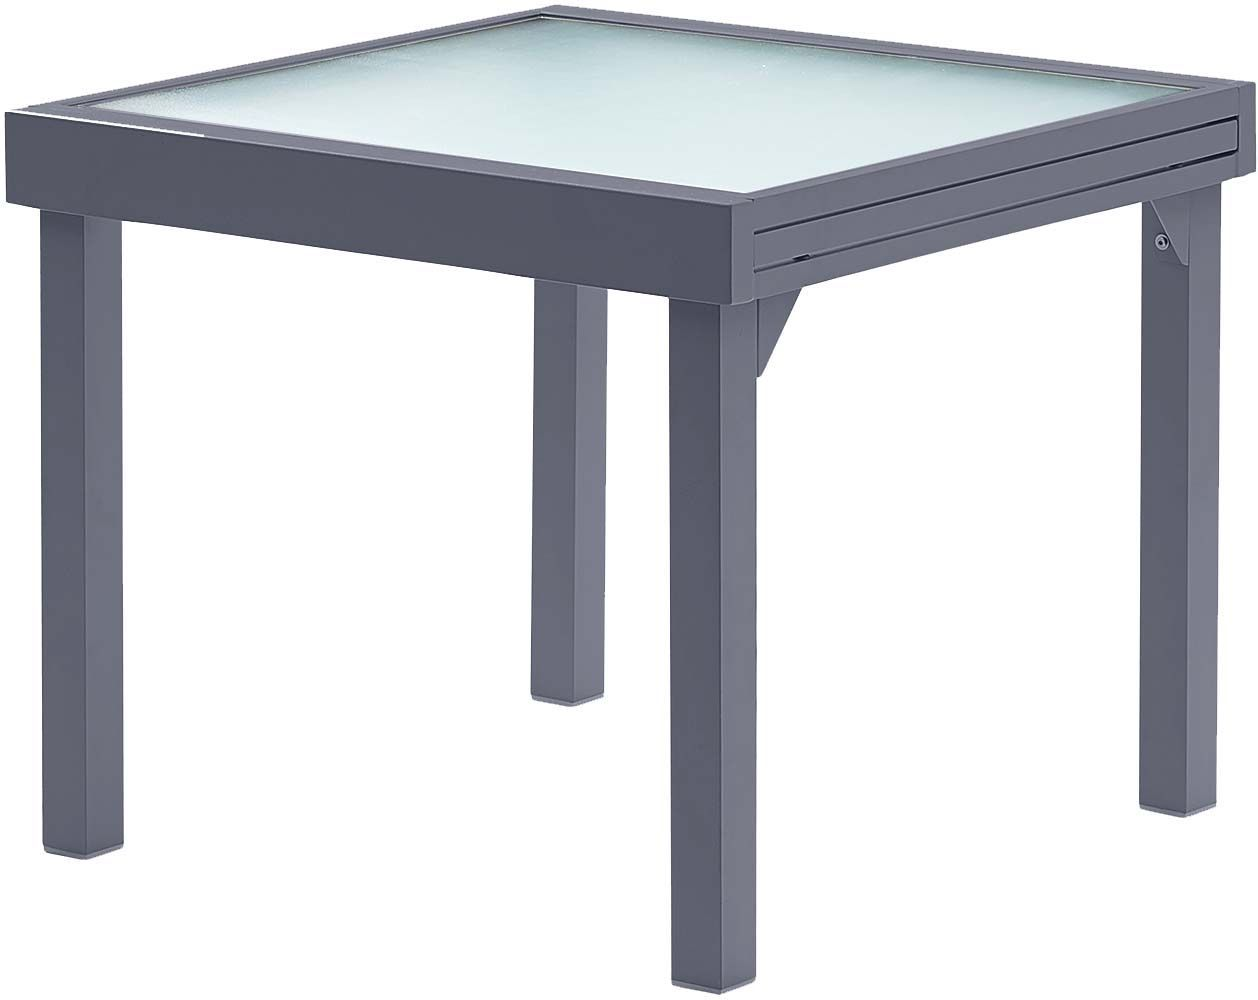 Table jardin modulo 4 8 personnes for Table 30 personnes